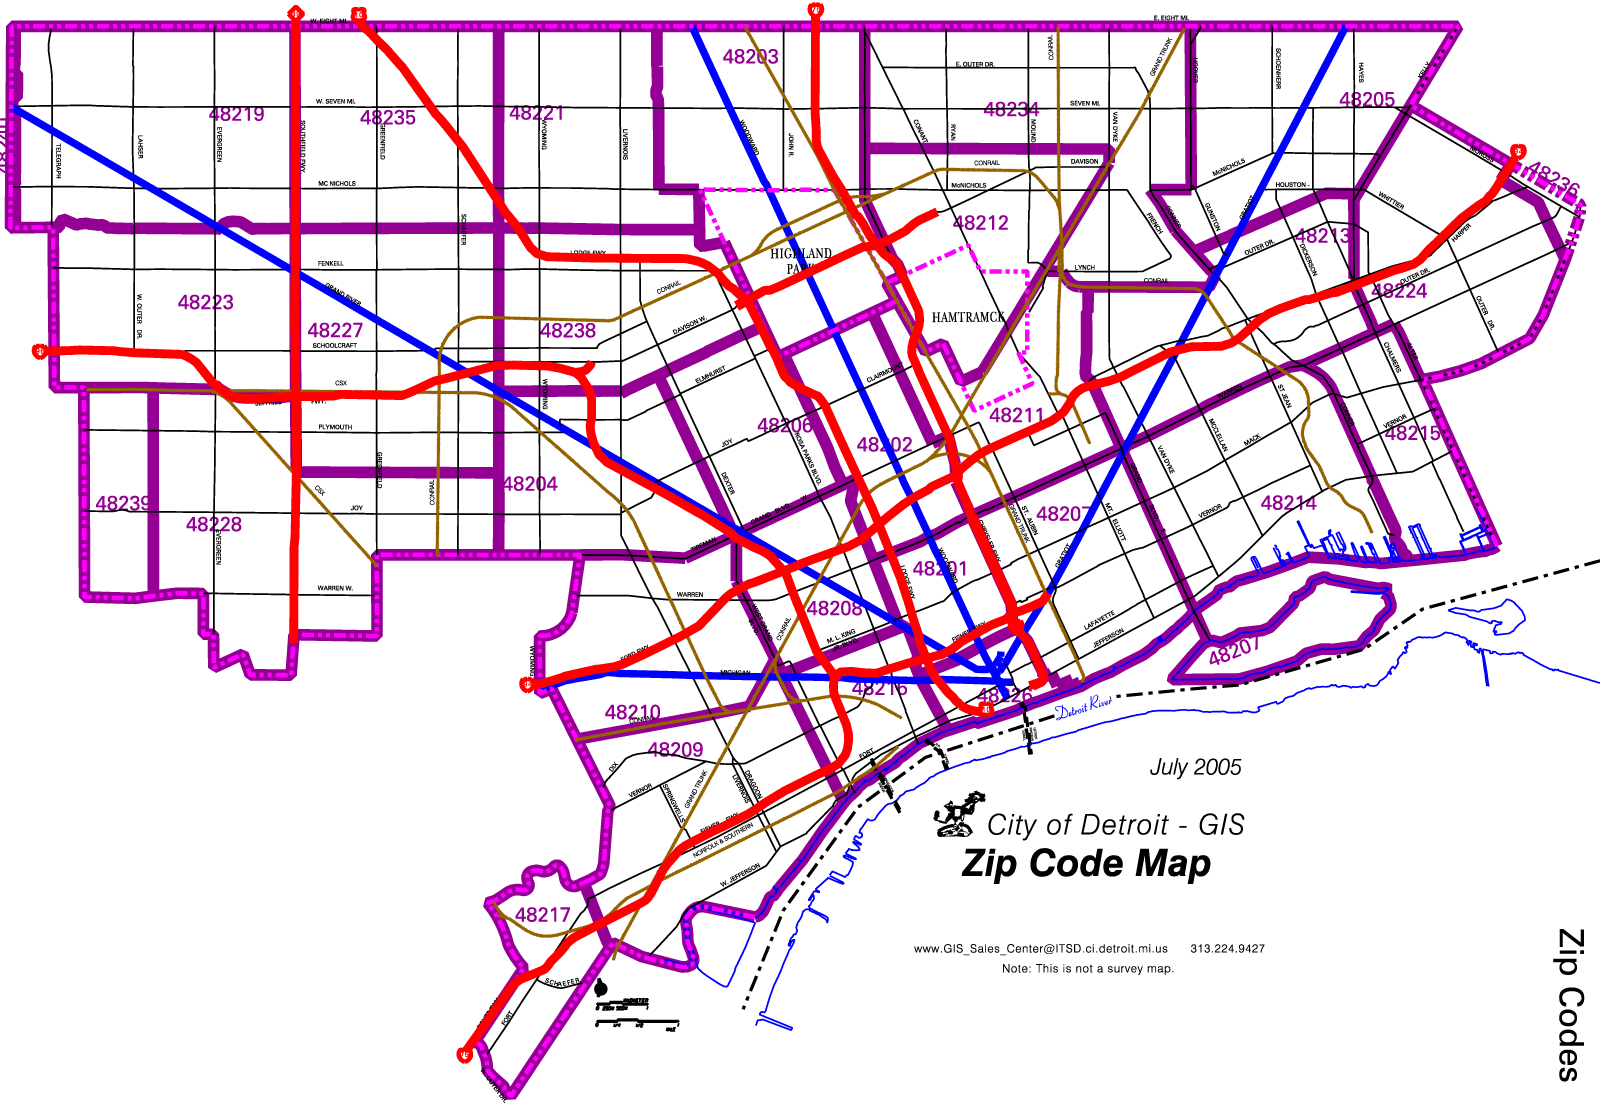 Detroit Zip Code Map Detroit Zip Code Map • Mapsof.net Detroit Zip Code Map